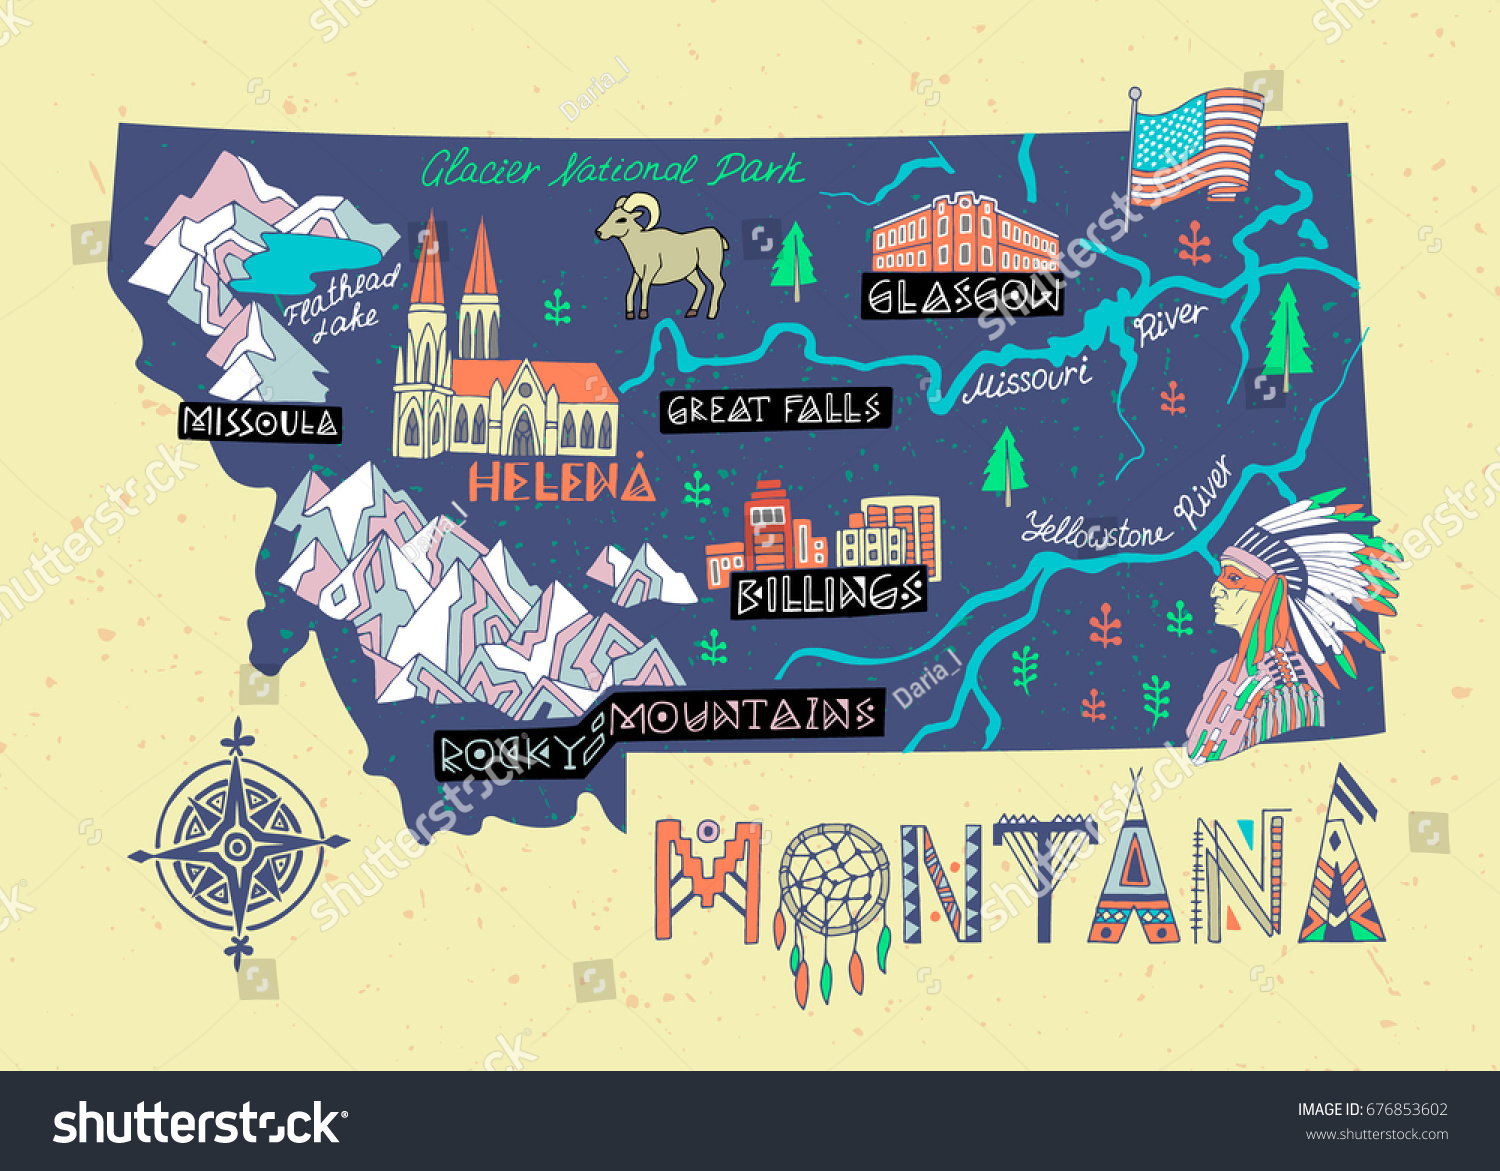 Montana State Illustrated Map Travel Attractions Stock Vector ...